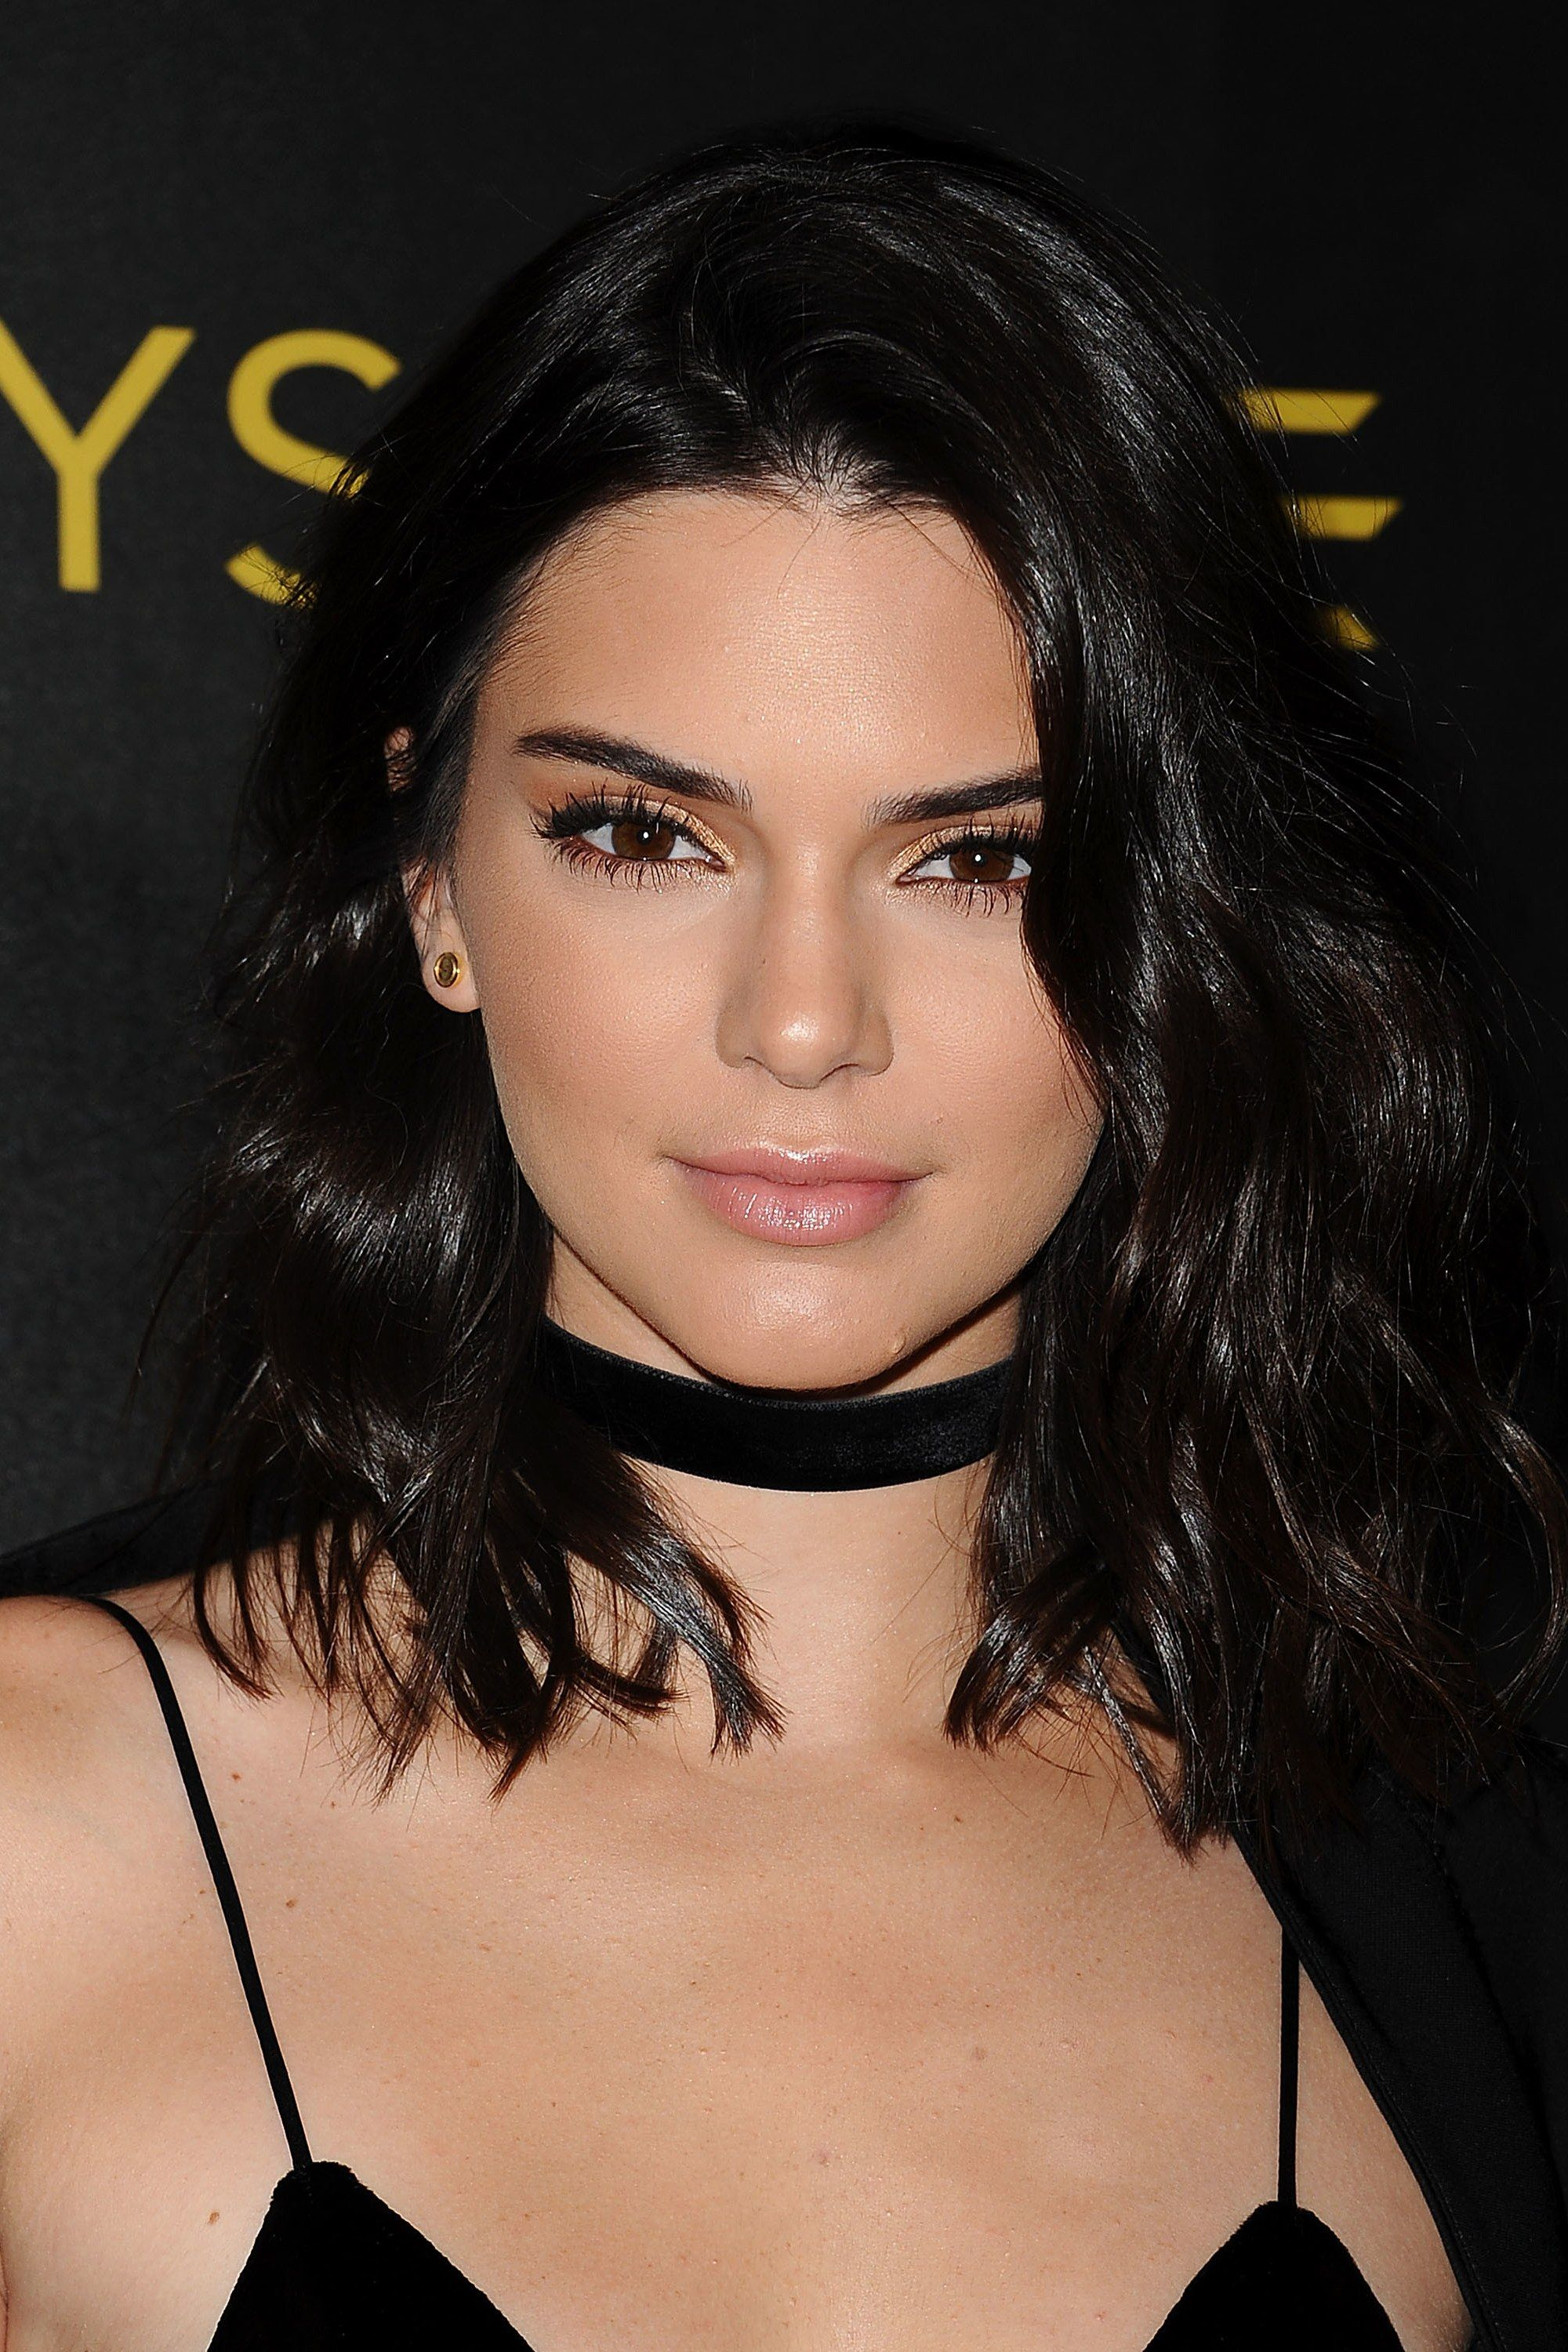 kendall jenner officially figured out how to get the perfect